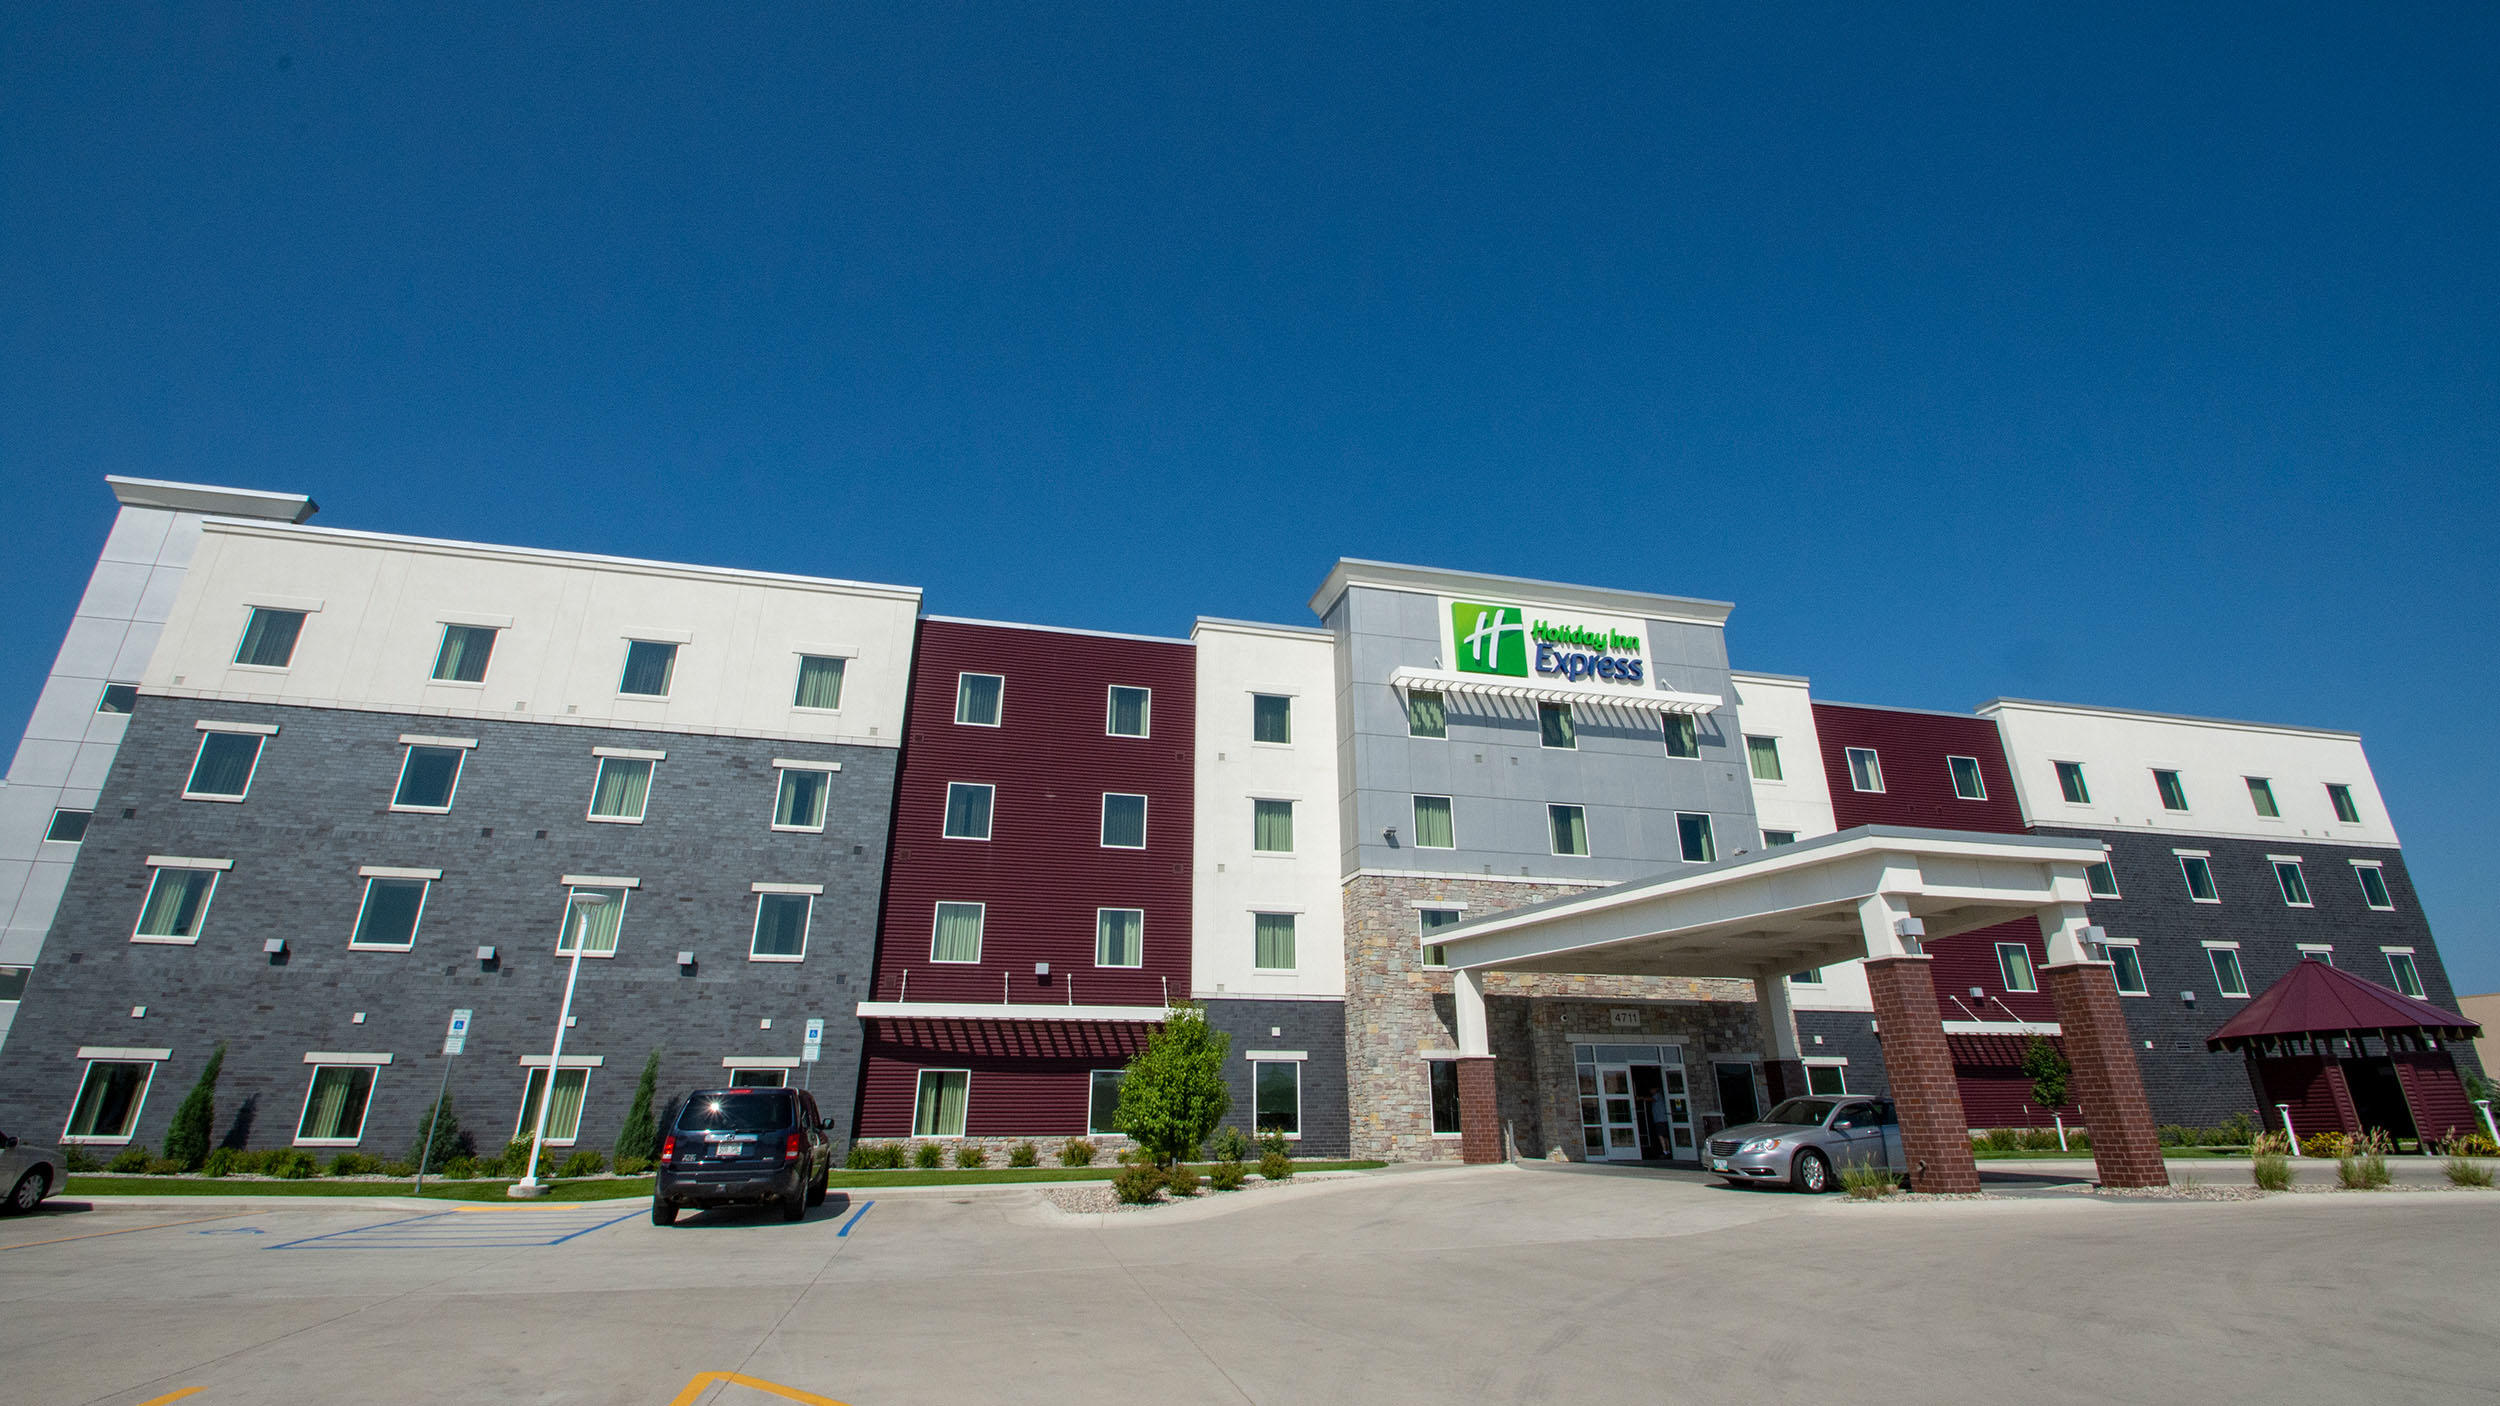 Holiday Inn Express 1 2500.jpg